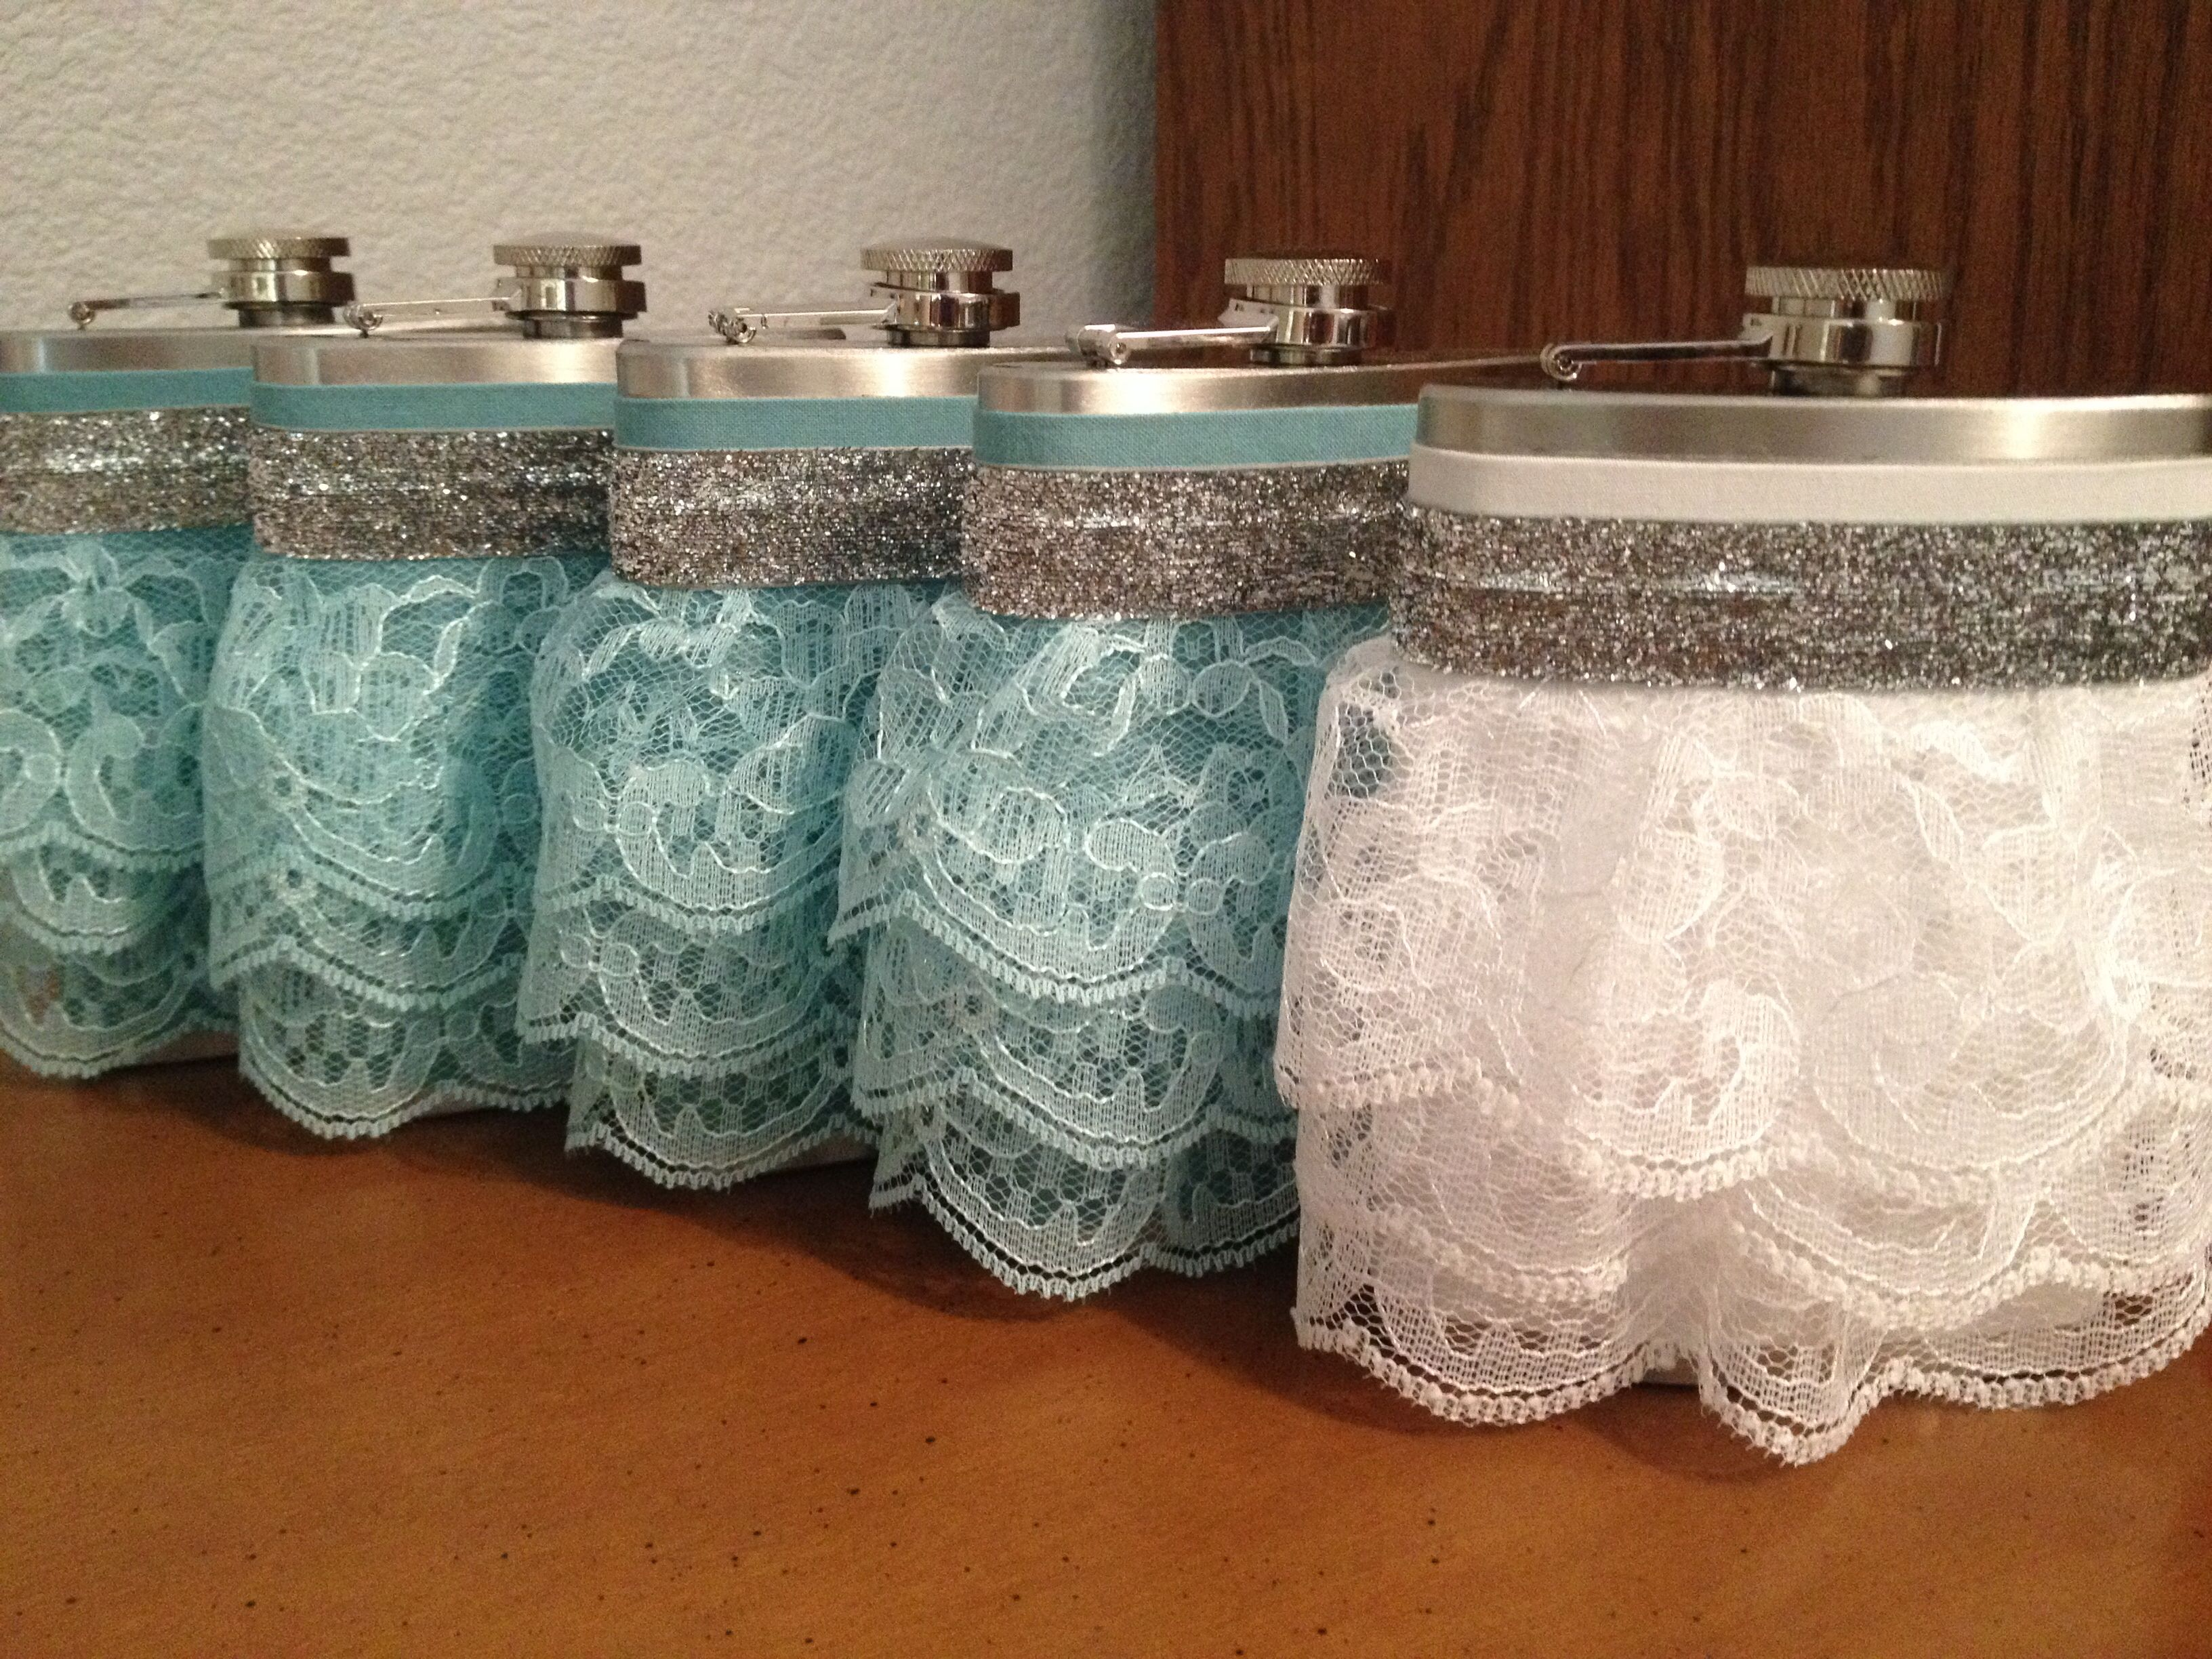 Wedding gifts for bridesmaids/bride - rustic wedding theme. $15+/- each depending on flasks/ruffles - can be made any color.